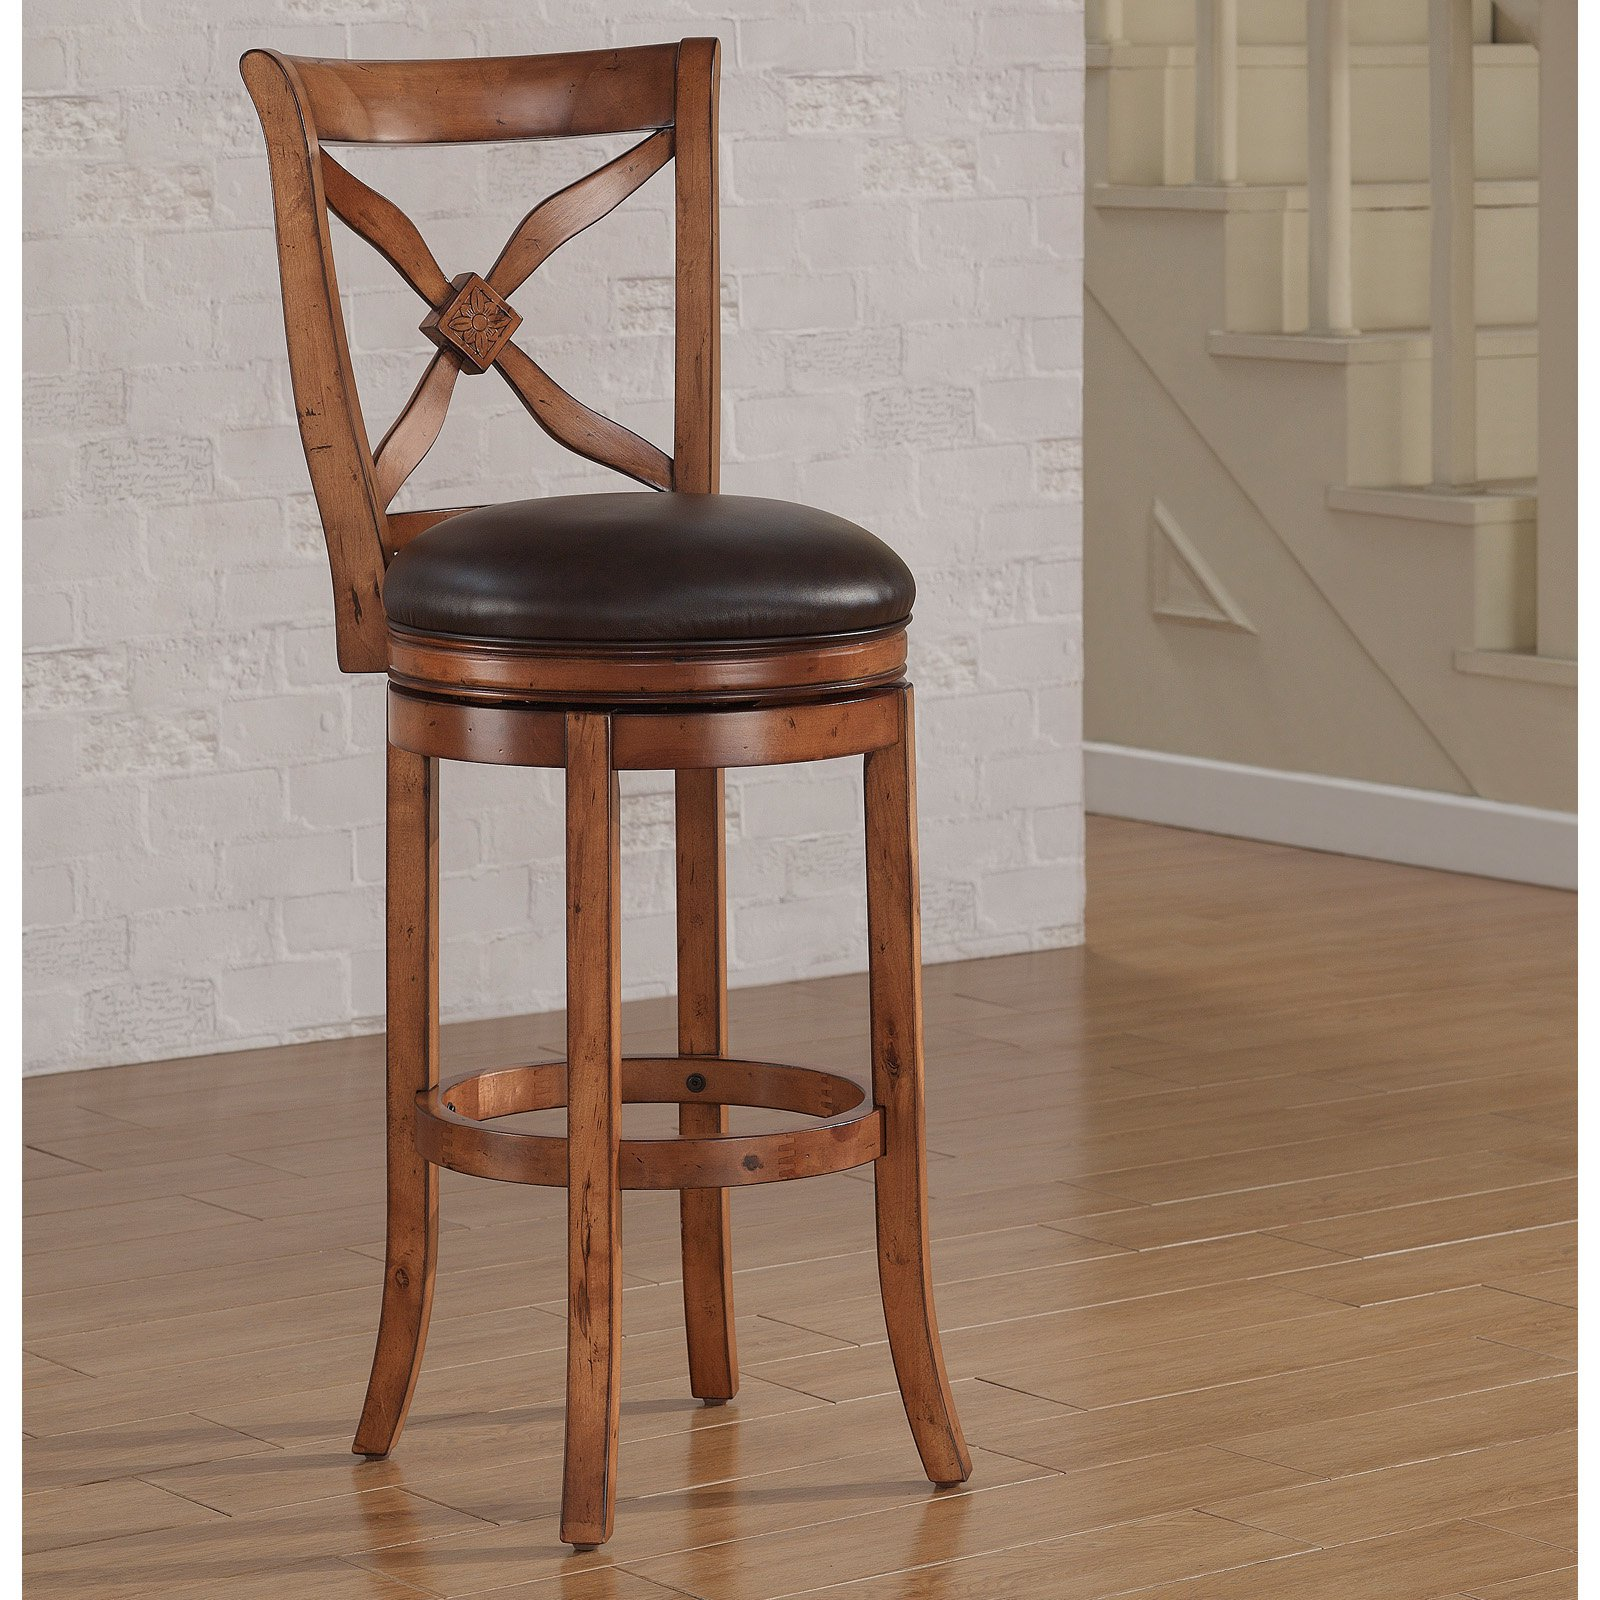 American Woodcrafters Provence Extra Tall Bar Stool - Light Oak